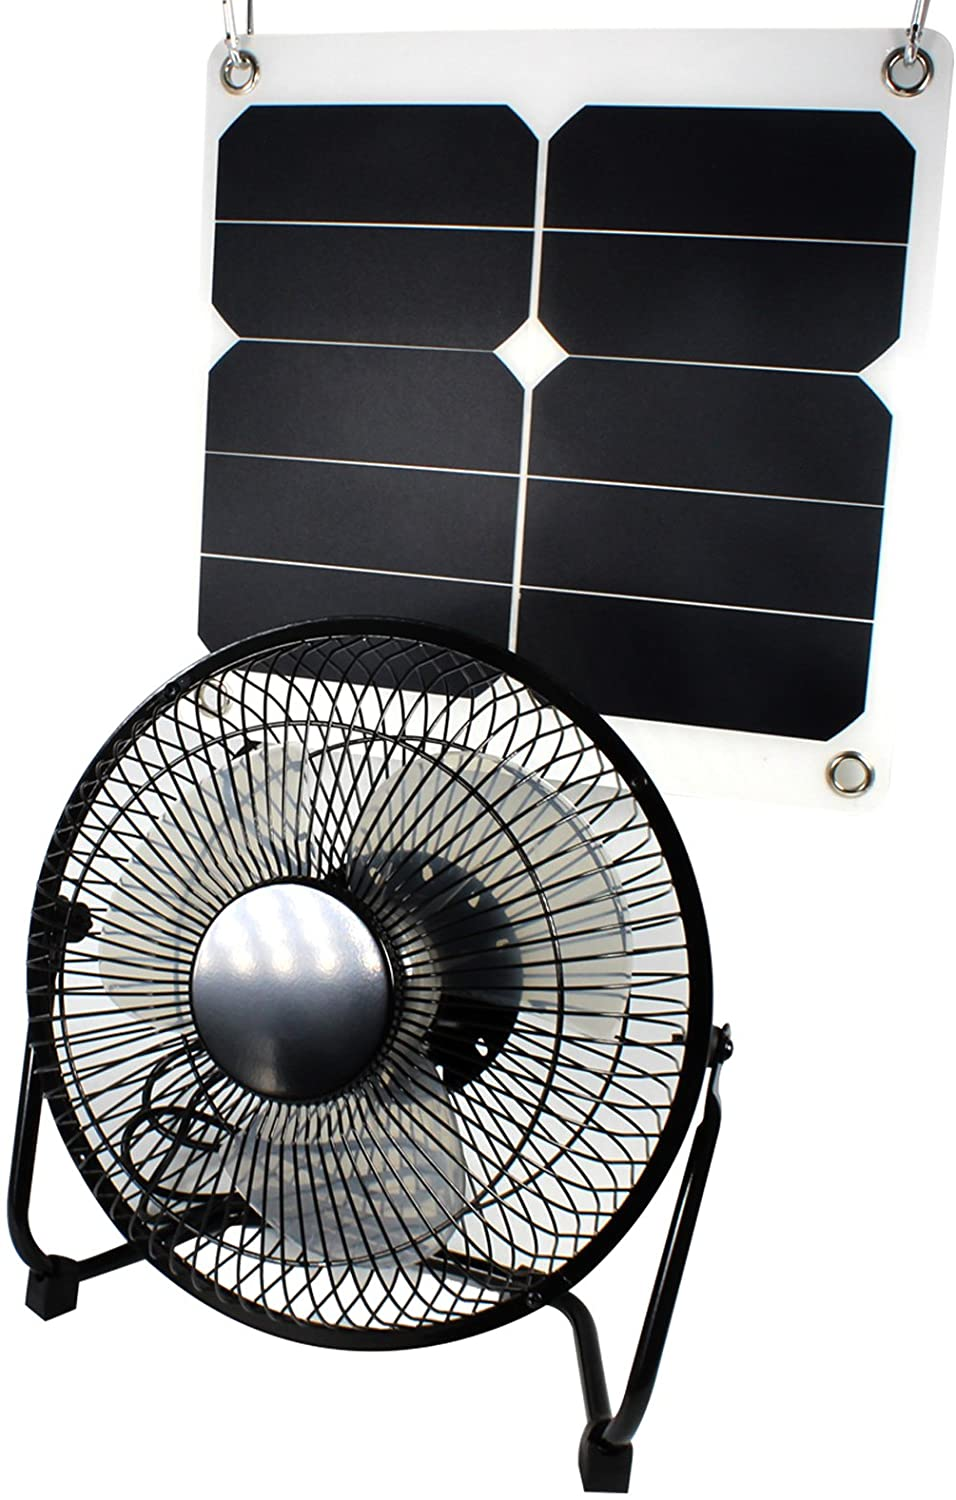 Best Solar Powered Fan in 2020 Review and Guide